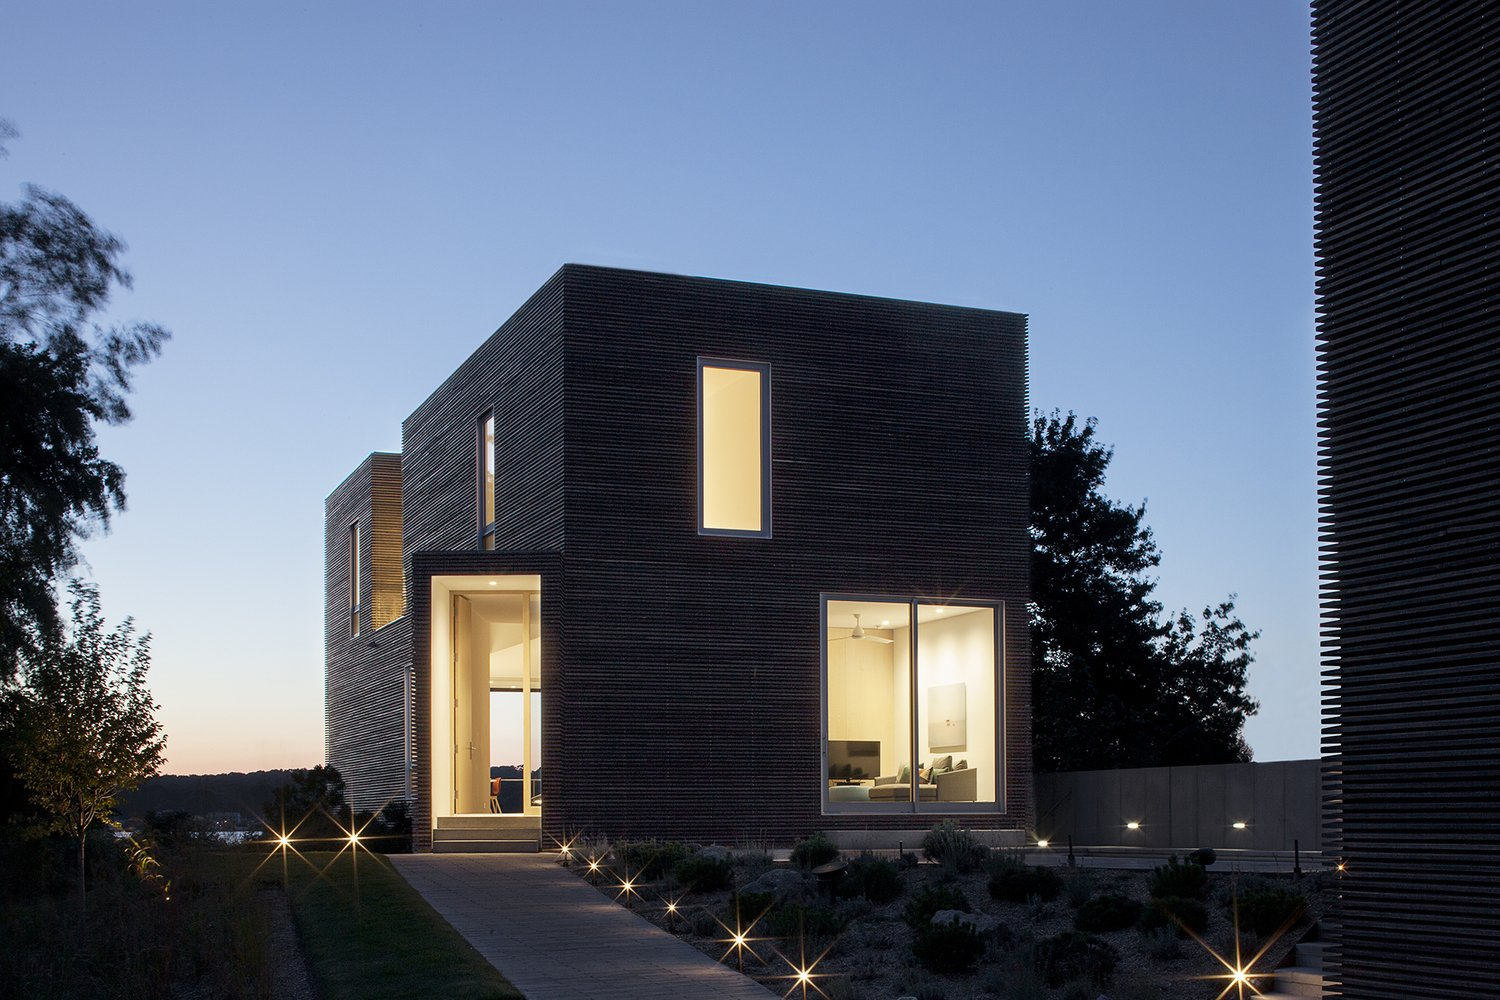 #QuonochontaugHouse #structure #form #coastal #exterior #outside #outdoors #landscape #windows #lighting #entryway #doorway #RhodeIsland #BernheimerArchitects  Quonochontaug House by Bernheimer Architecture